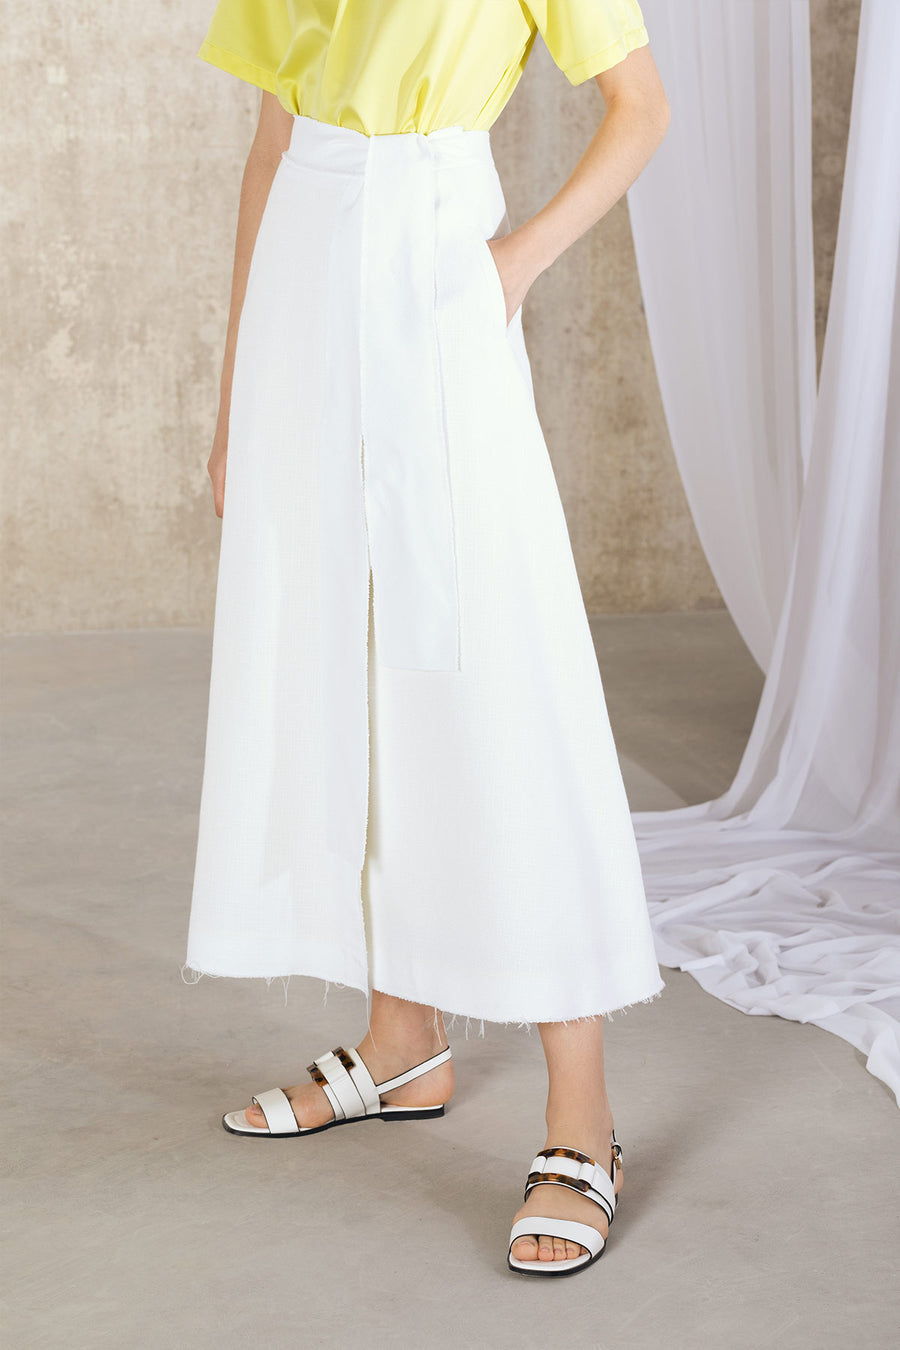 KARA Raw Edge Wrap Skirt - White